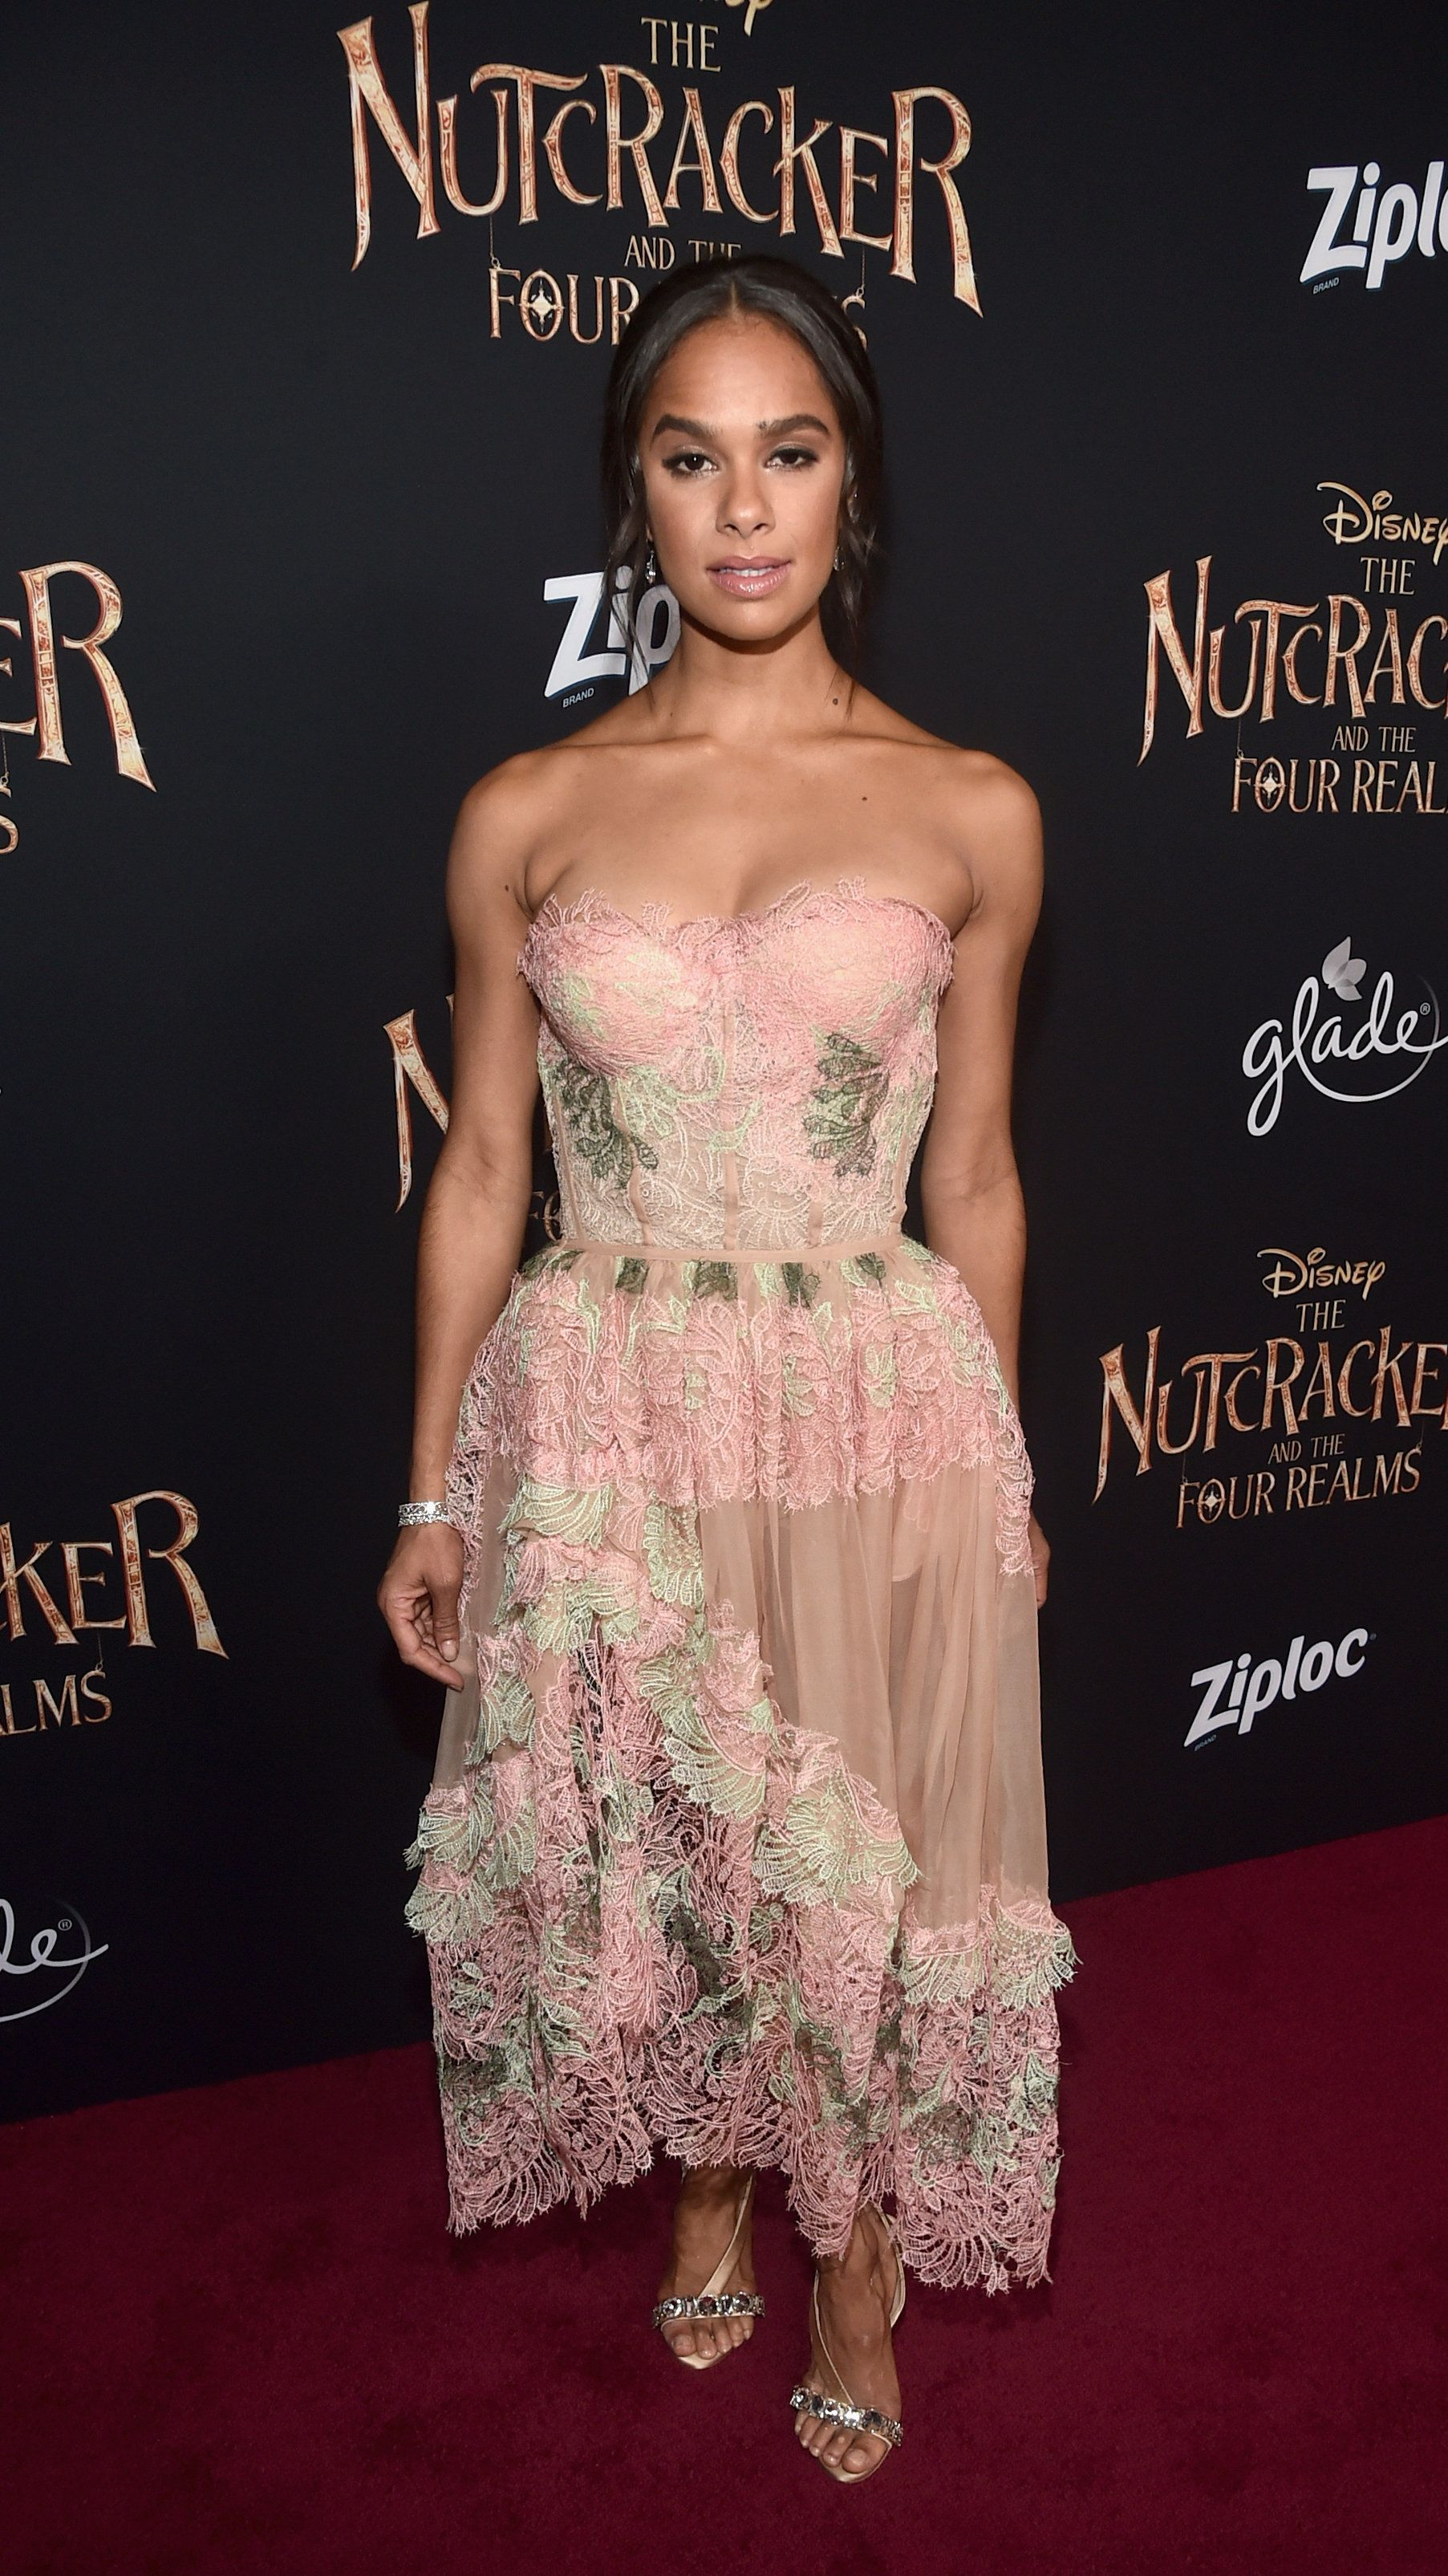 HOLLYWOOD, CA - OCTOBER 29: (EDITORS NOTE: Retransmission with alternate crop.) Misty Copeland arrives at the world premiere of Disney's 'The Nutcracker and the Four Realms' October 29th at Hollywood's El Capitan Theatre. MackenzieFoy, Morgan Freeman, Misty Copeland, Jayden Fowora Knight, Jack Whitehall and Lil Buck, as well as filmmakers Lasse Hallstrom (director), Joe Johnston (director) and Mark Gordon (producer) were in attendance. October 29th, 2018.  (Photo by Alberto E. Rodriguez/Getty Images for Disney)